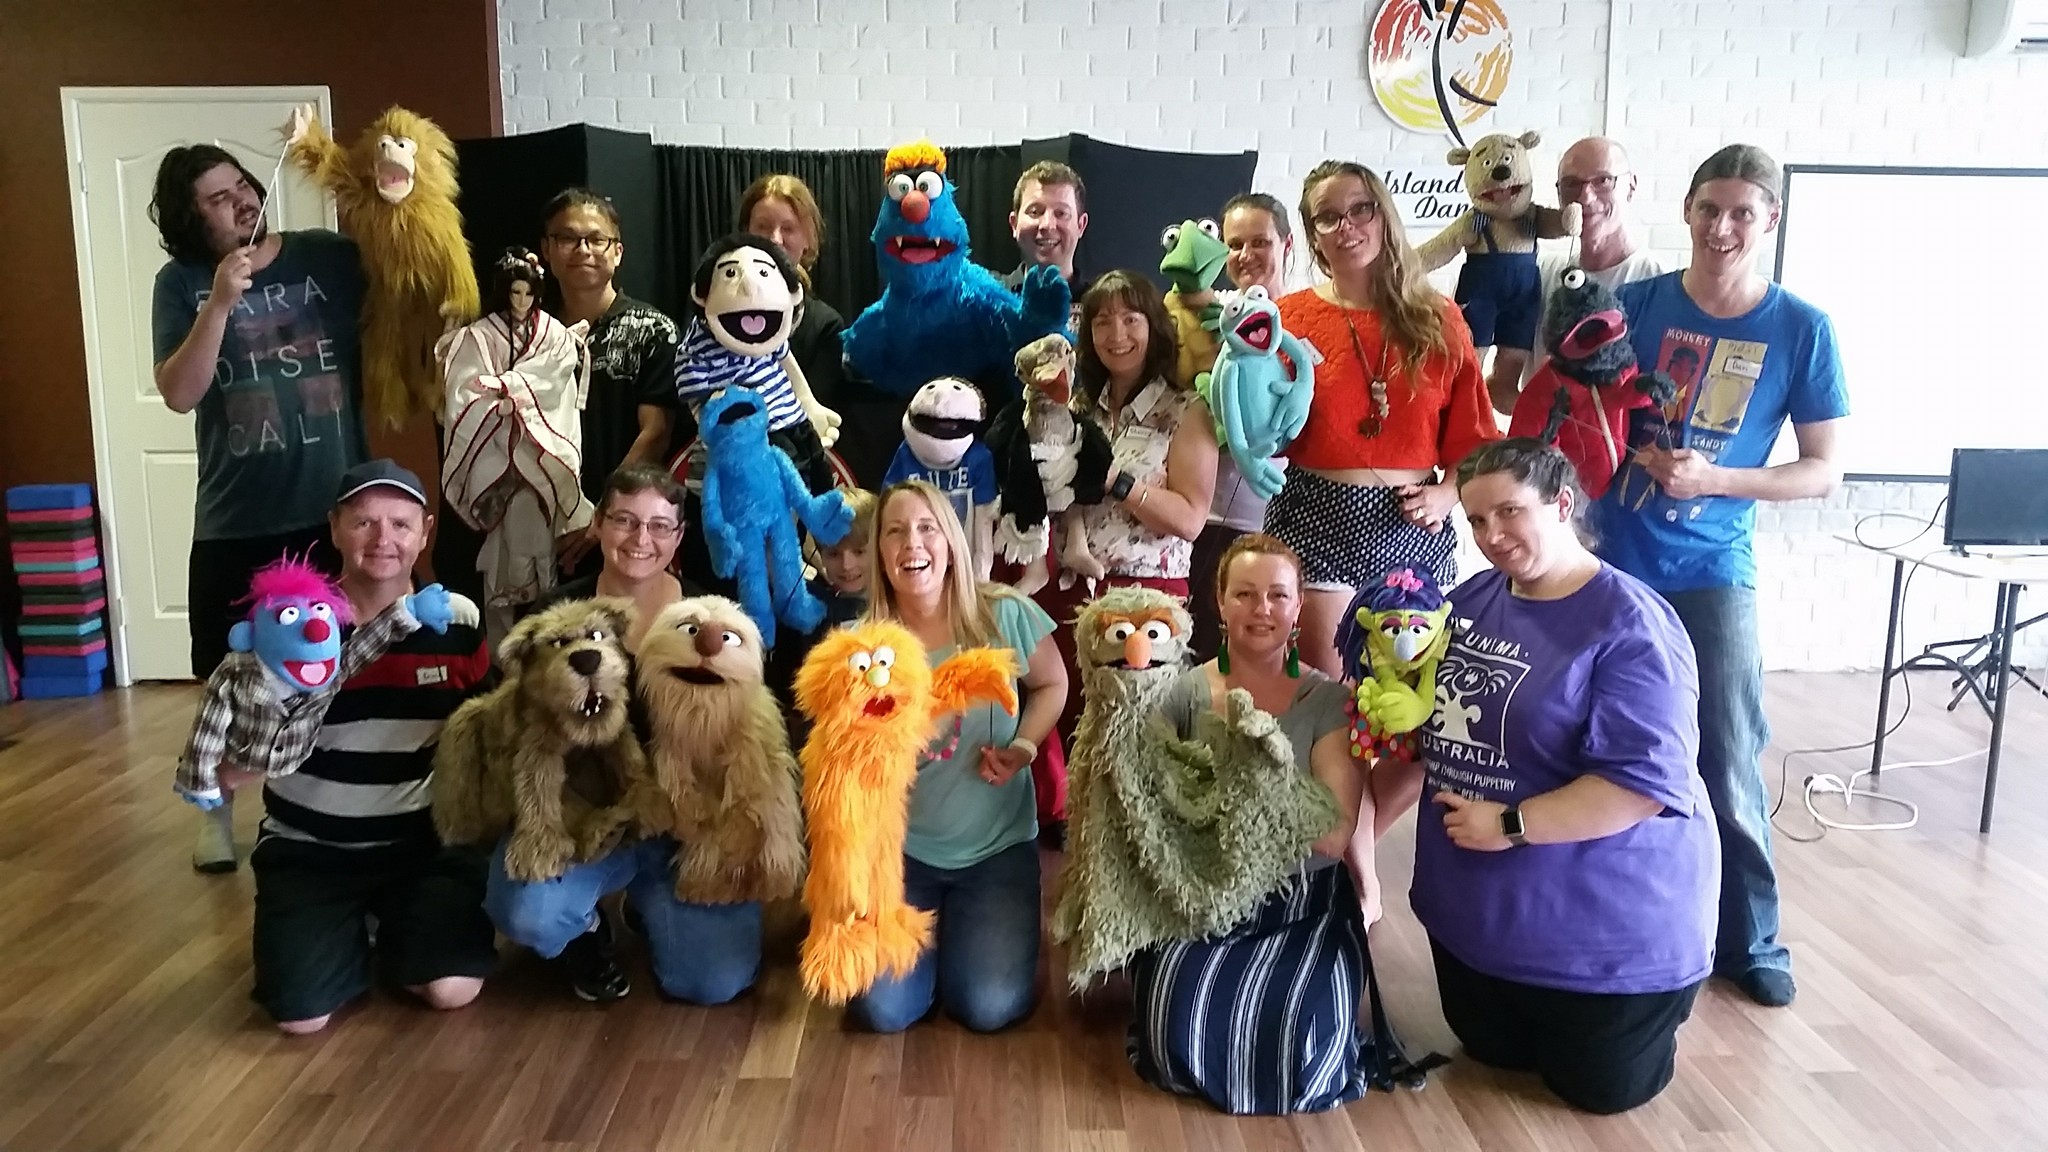 Corporate Entertainment, Corporate Team Building Activities, Party Entertainment For Hire | Puppet Show, Adult Puppetry Workshops - Puppeteer Workshop, Bribie Island